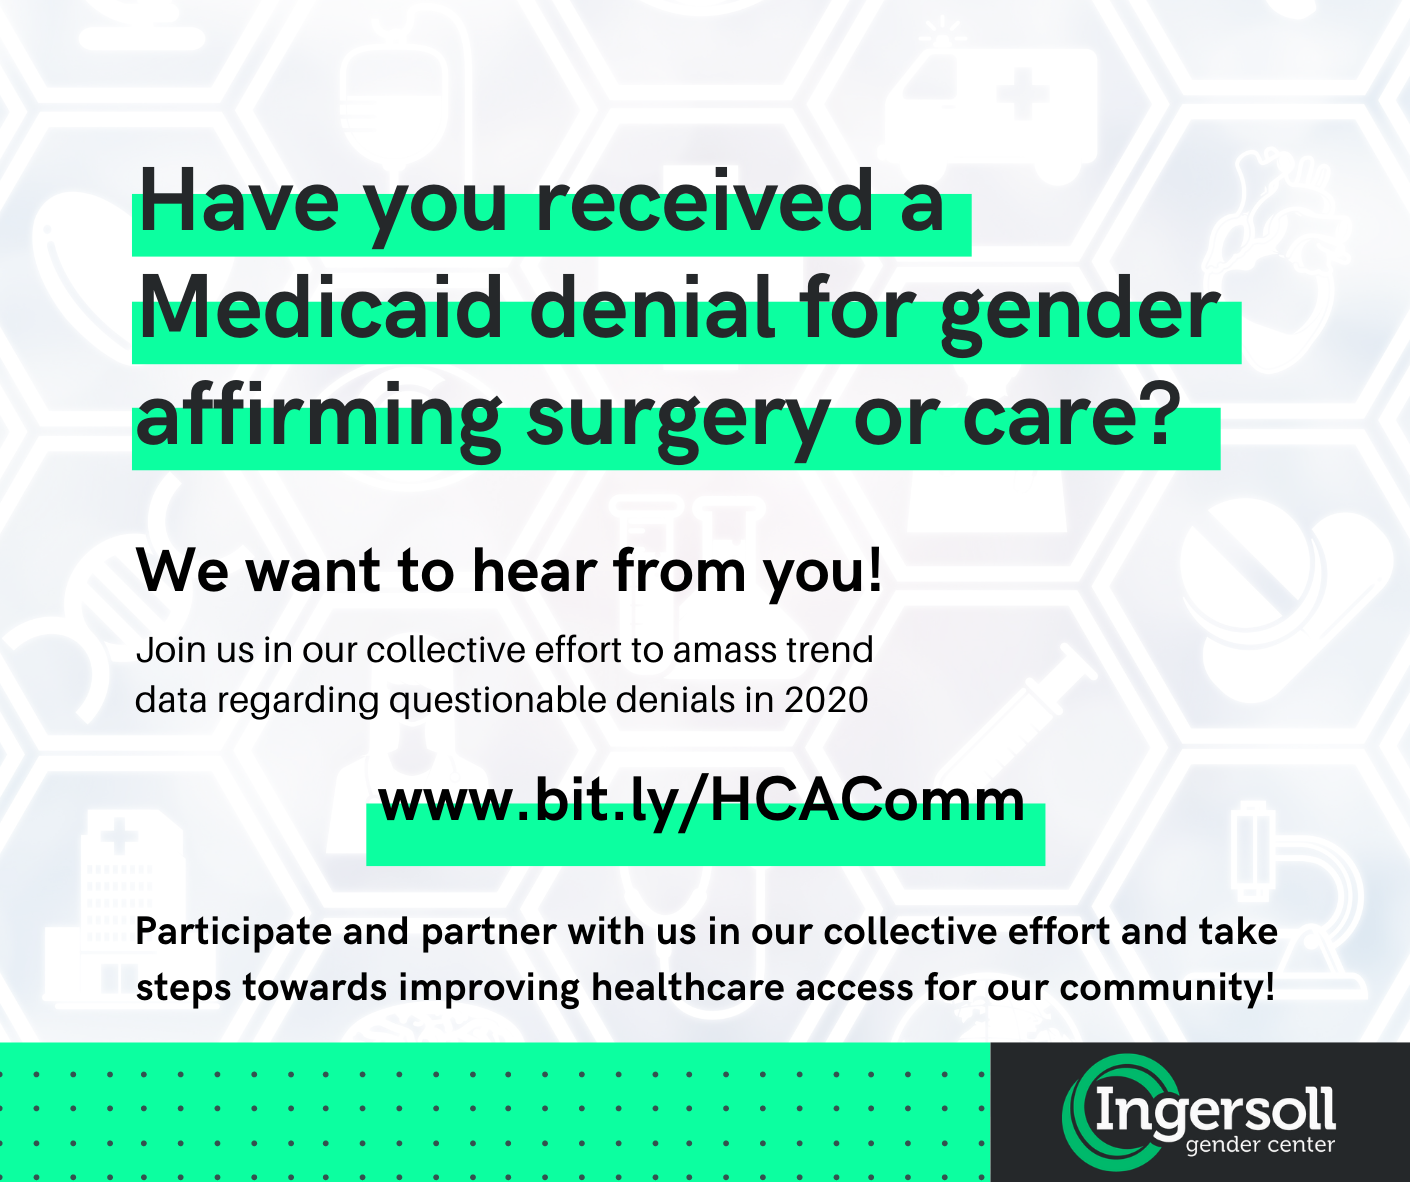 Have you received a Medicaid Denial for Gender Affirming Surgery_Care_